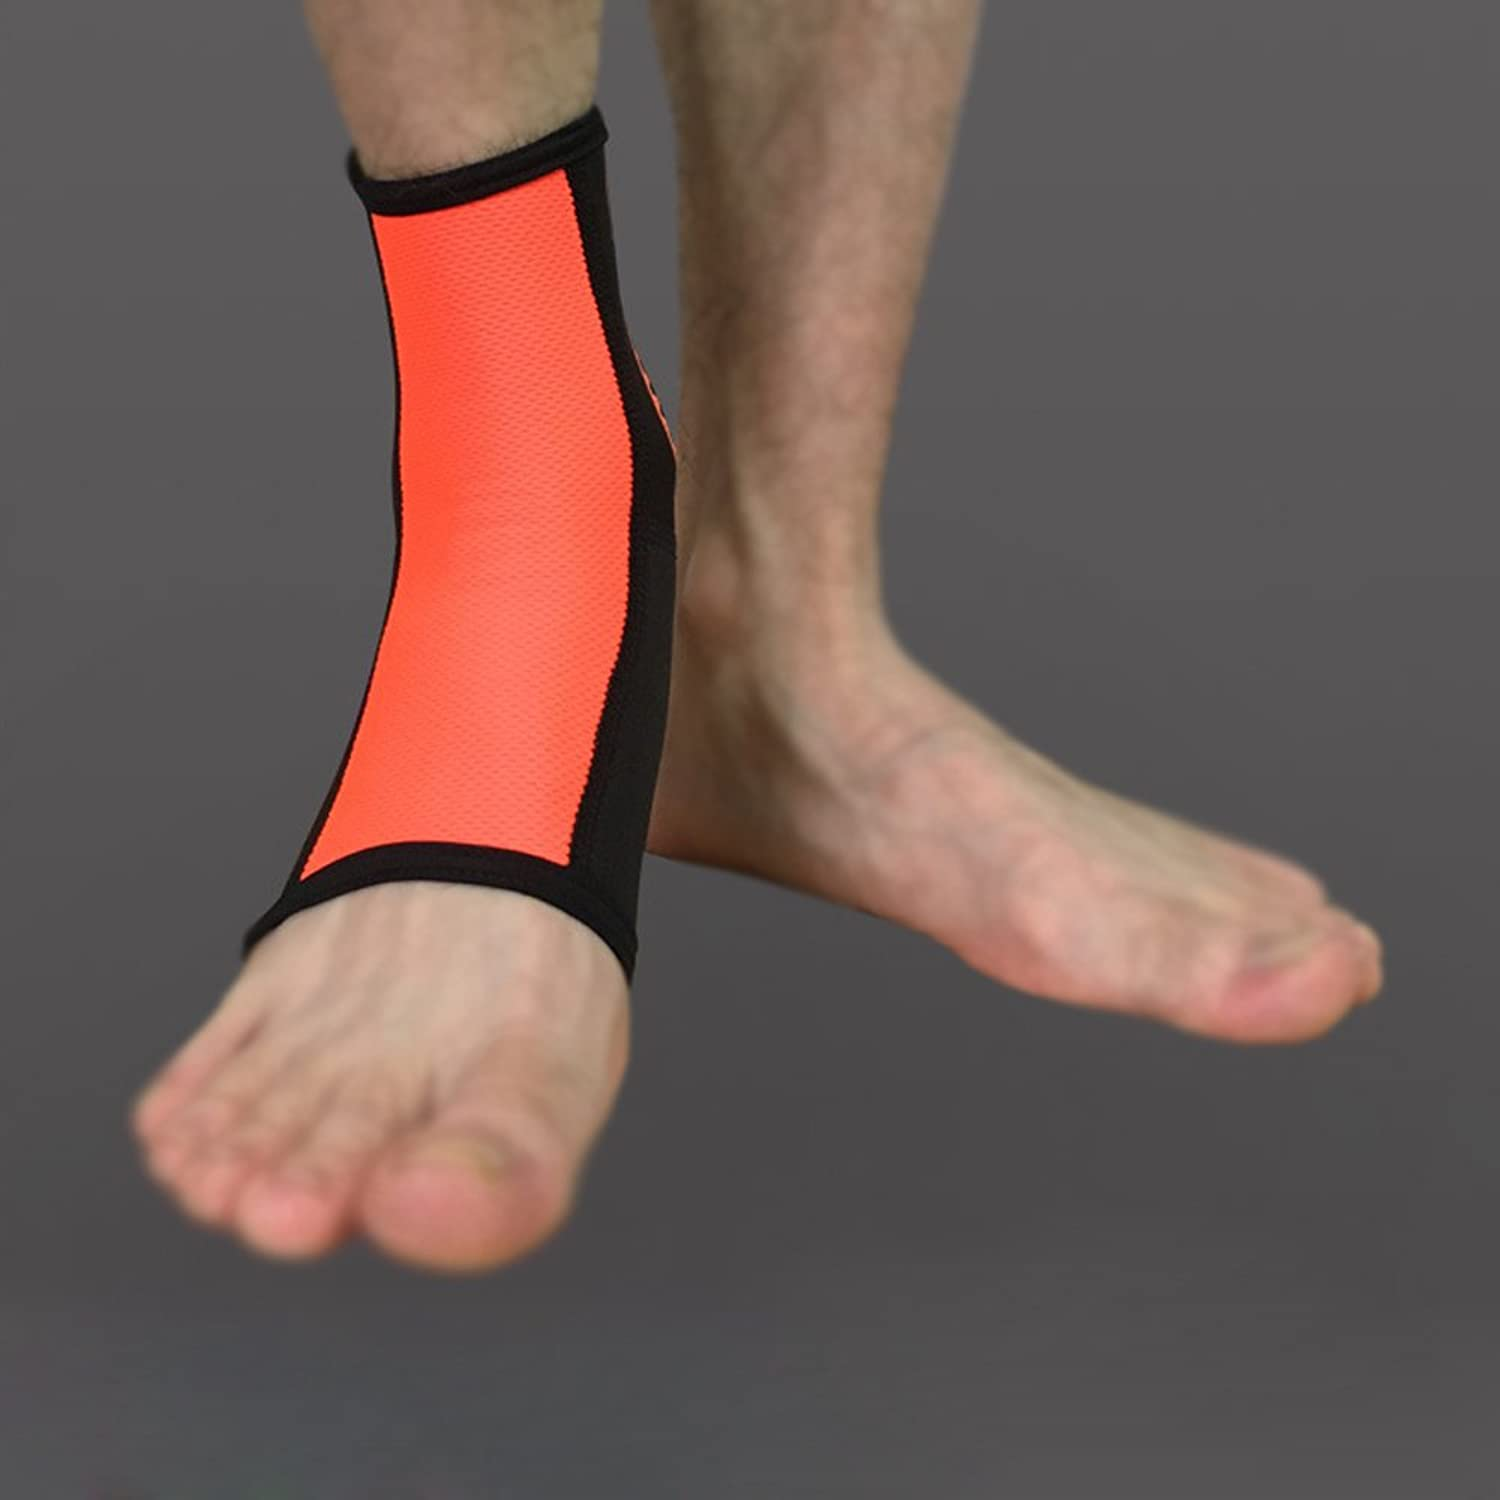 Ankle stabilizers Compression Socks Ankle Support Ankle Compression Sleeves MMA shin Guard Fasciitis Socks AntiKicking Socks orange,M